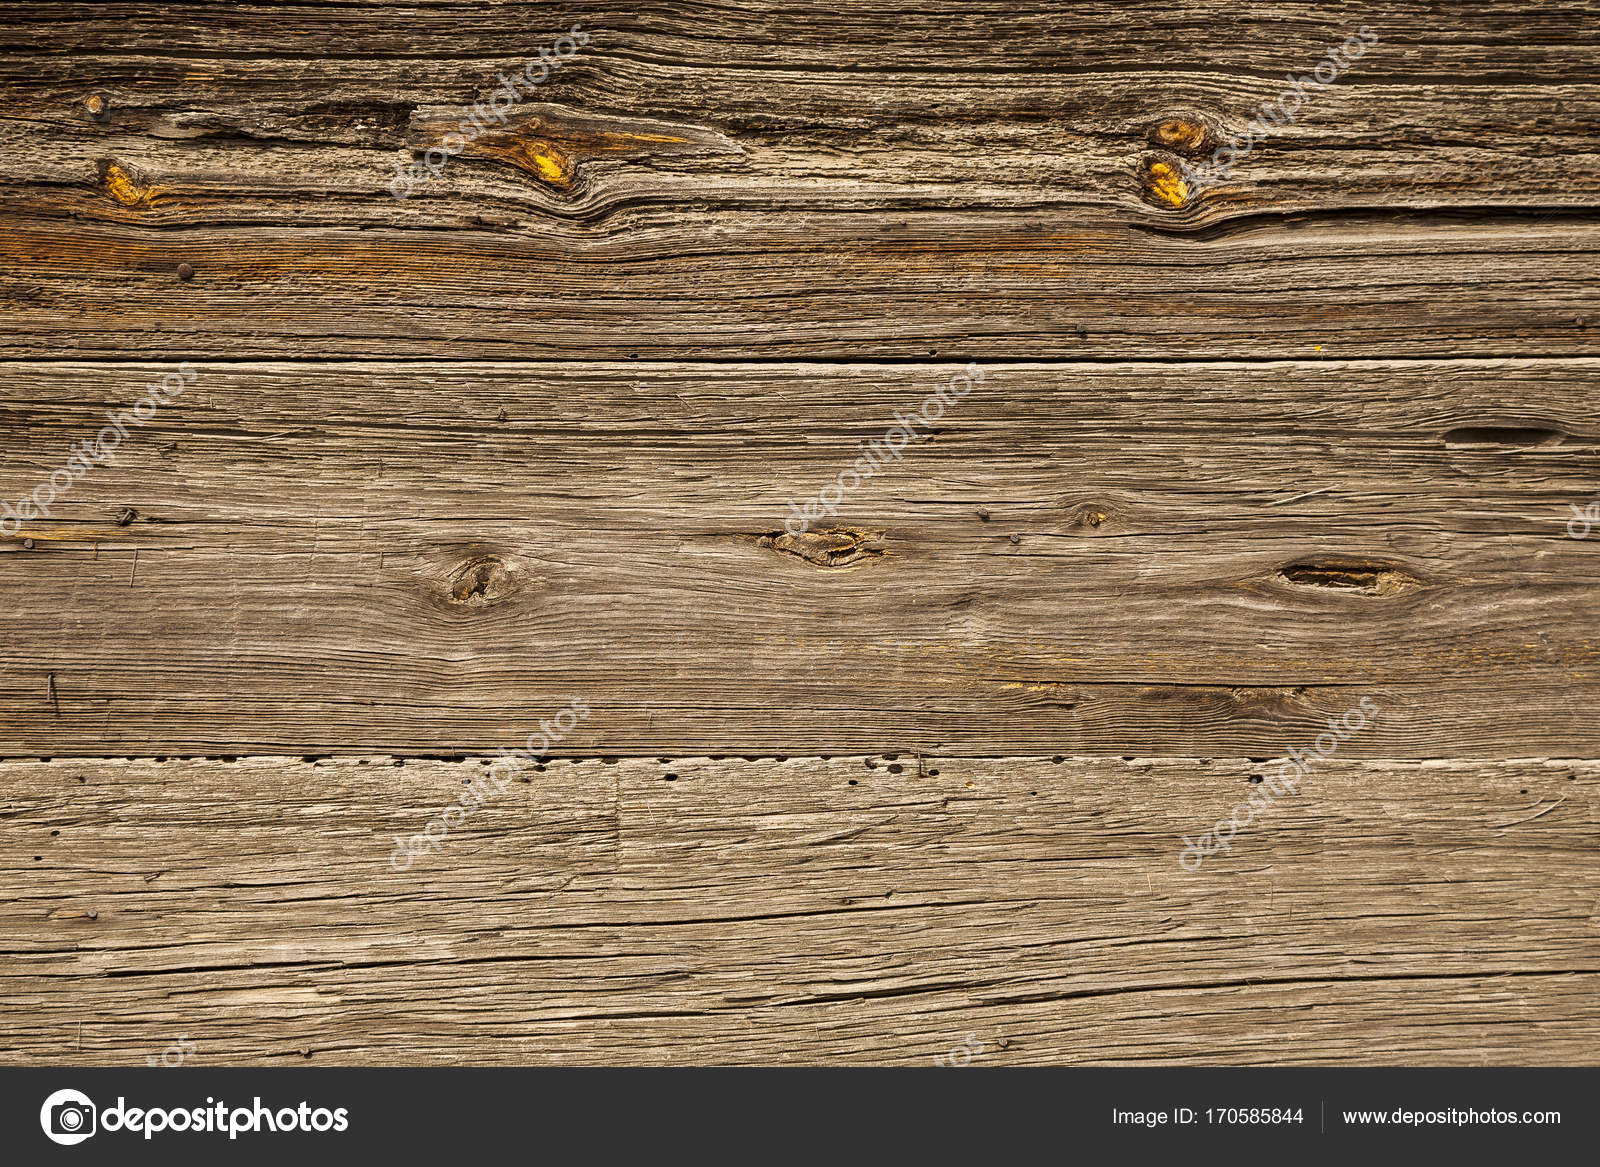 Wood Grain Background Texture Plank Old Striped Timber Board Stock Photo